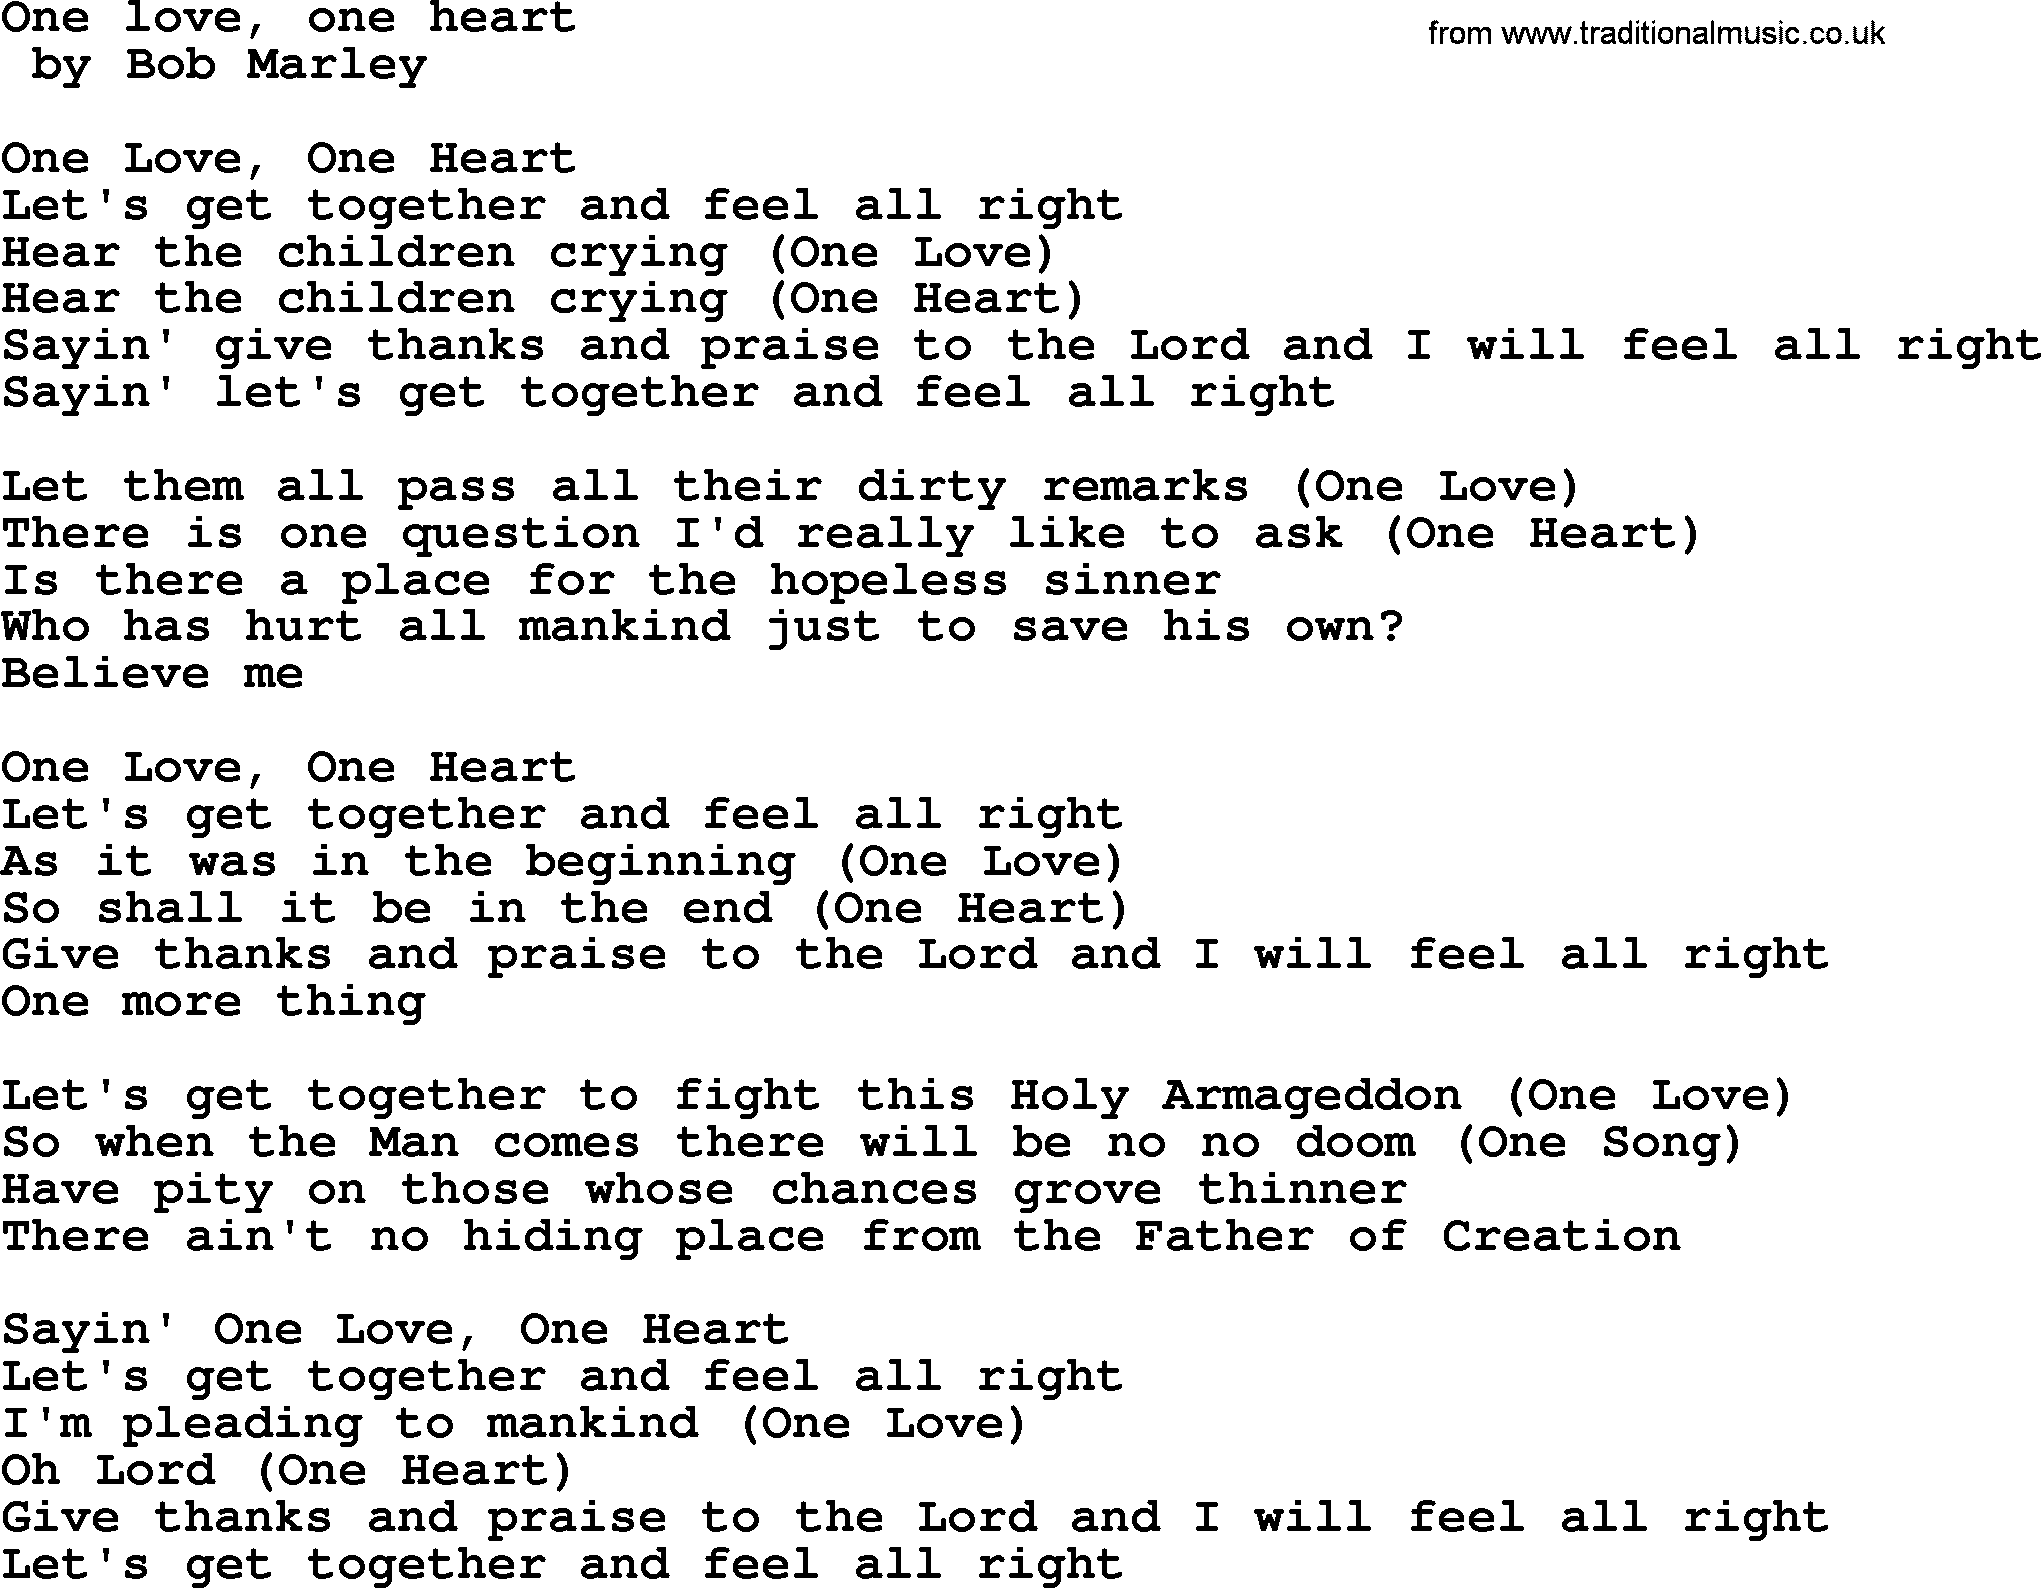 Bruce Springsteen song: One Love, One Heart, lyrics